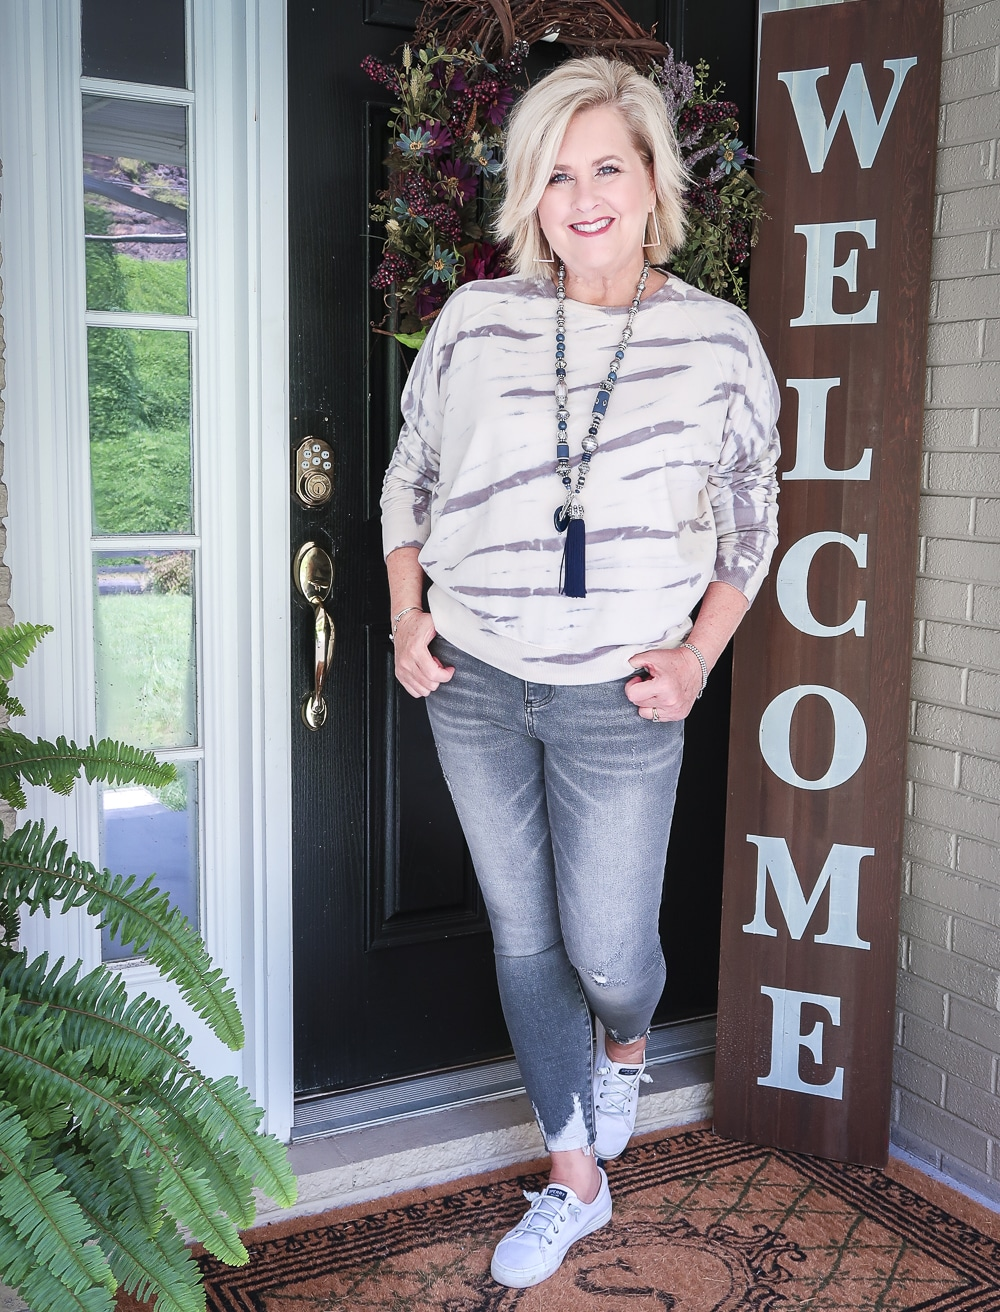 Fashion Blogger 50 Is Not Old is wearing a tie-dye sweatshirt with a pair of washed gray jeans with Sperry Crest Vibe sneakers